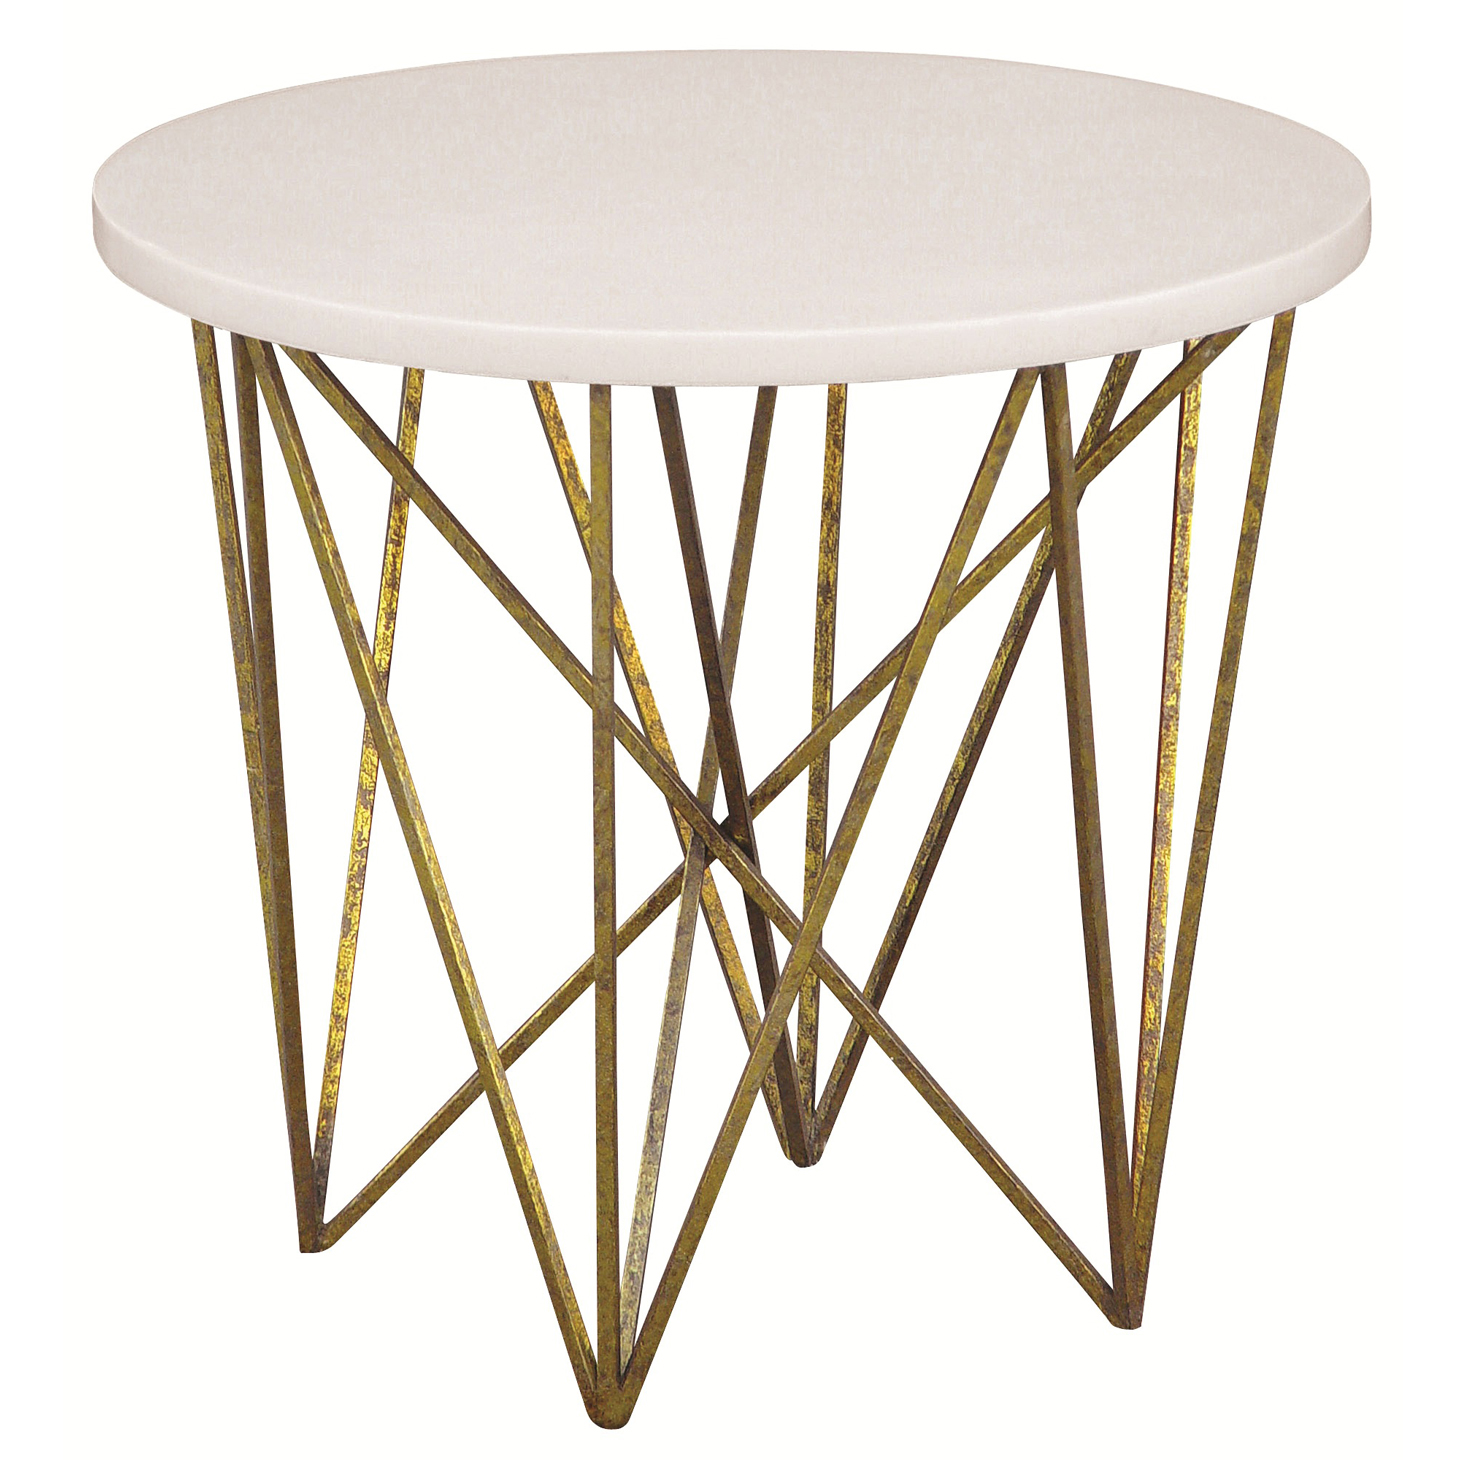 George Oly White Shell Gold Hairpin End Table